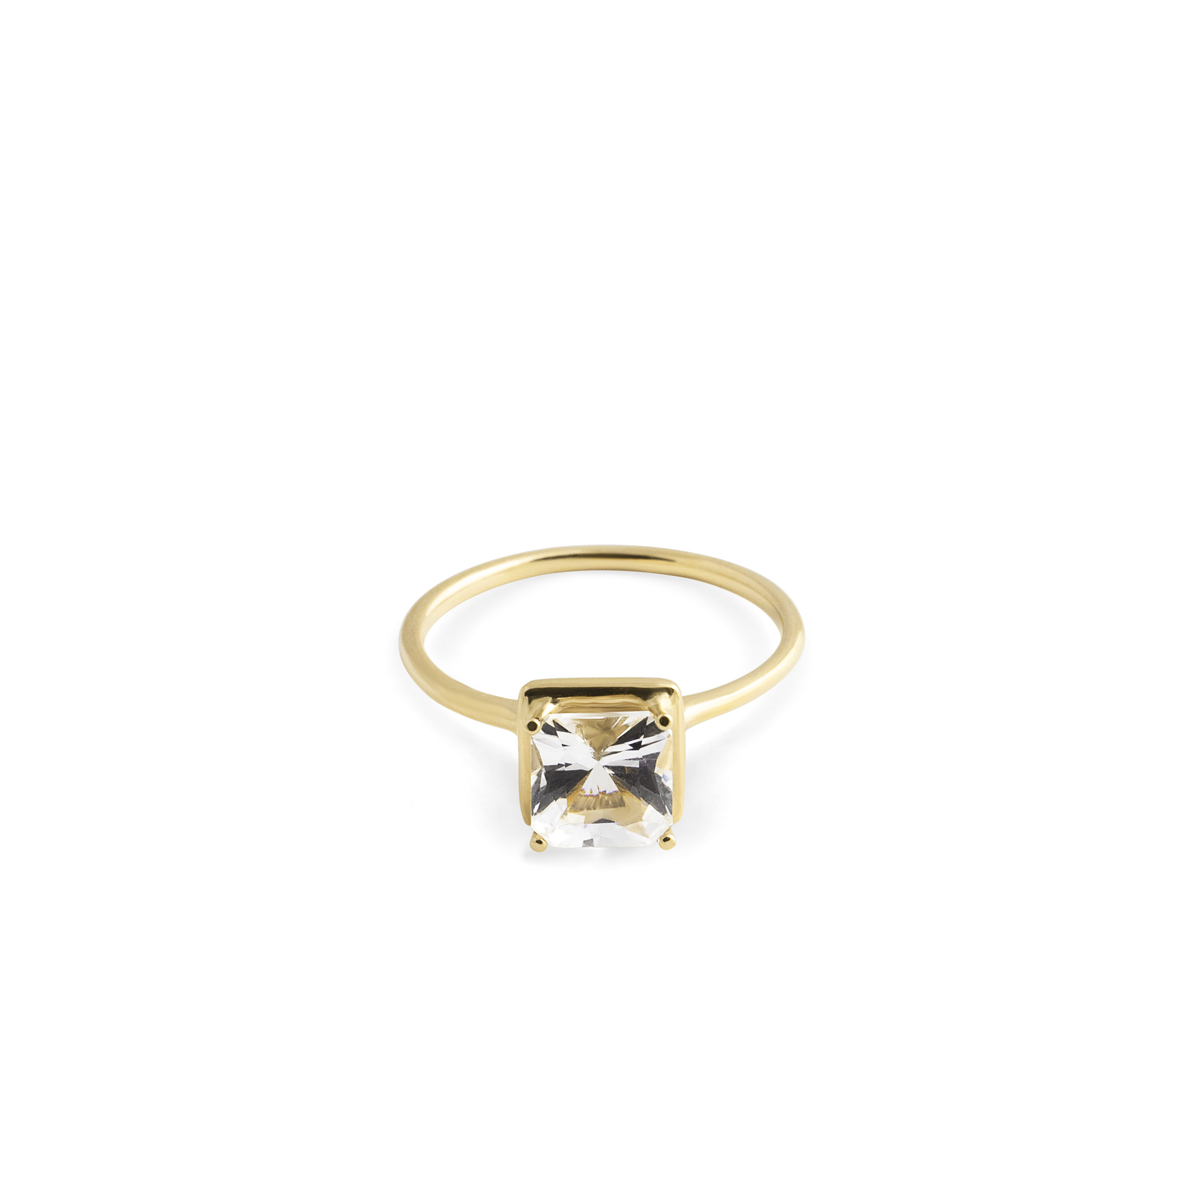 18K THIN SQUARE TOPAZ RING in the group SHOP at EMMA ISRAELSSON (ring077)